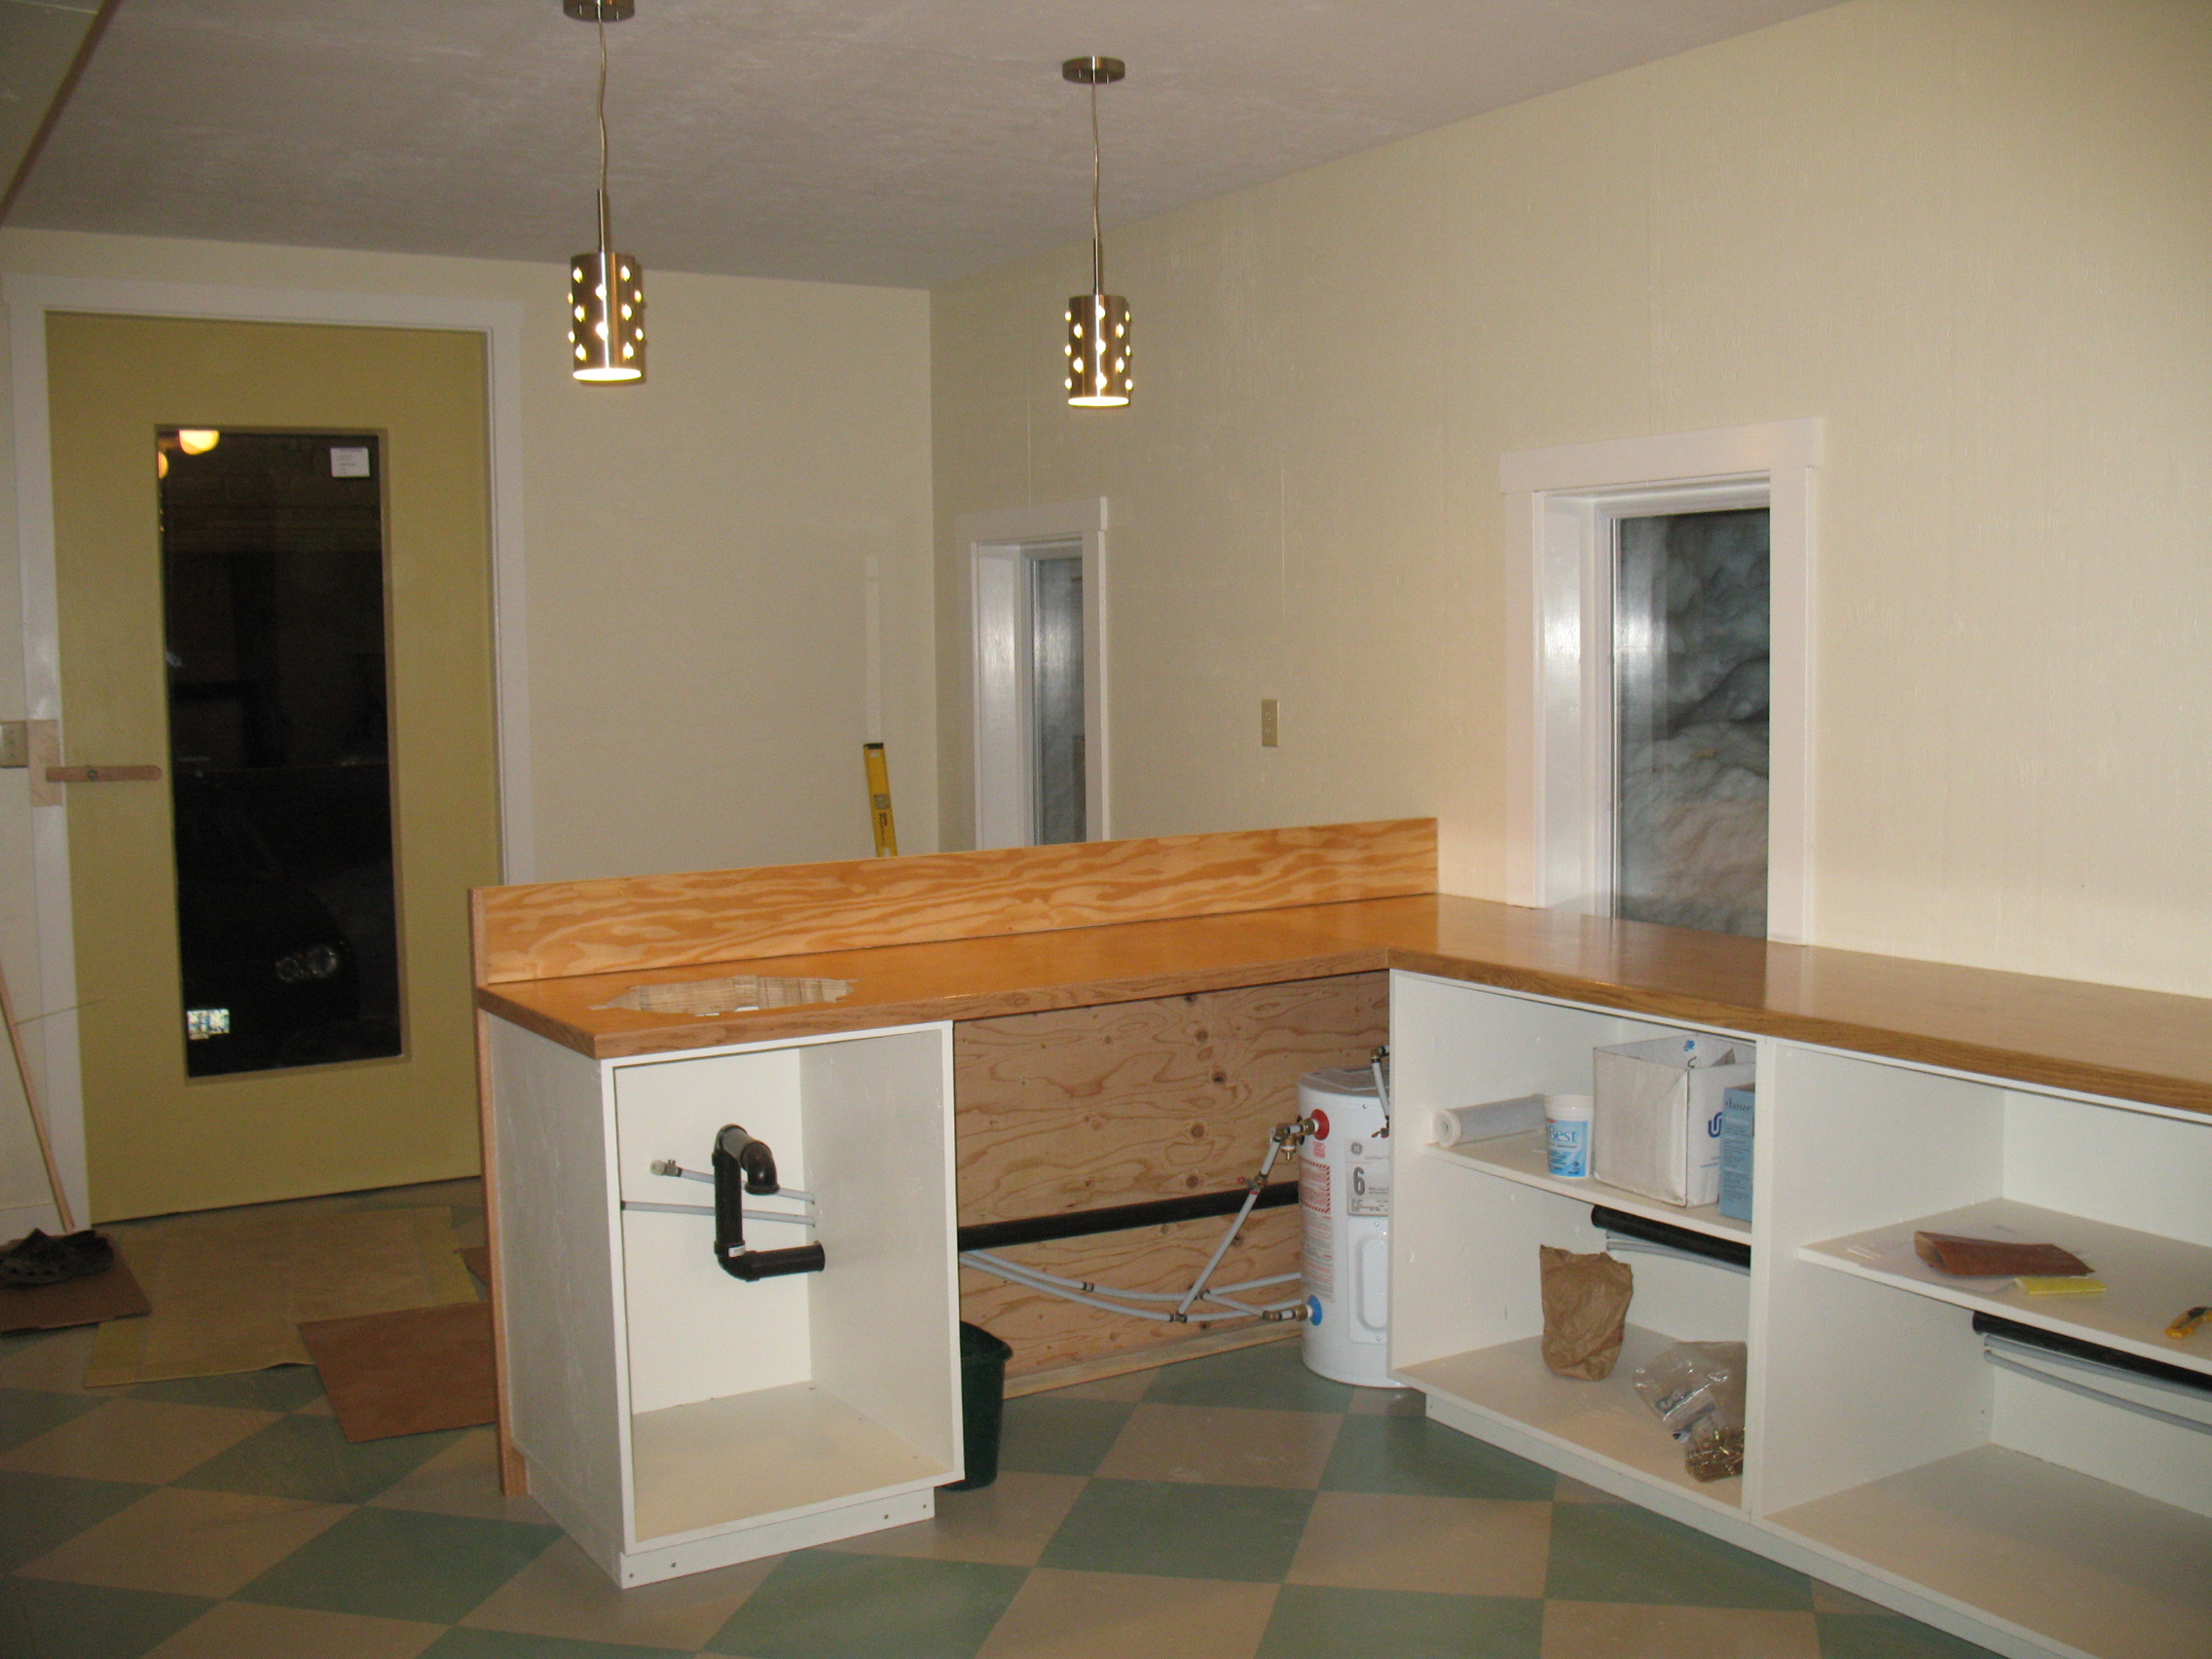 Counters, plumbing, new window in front door: all coming along at breakneck speed.